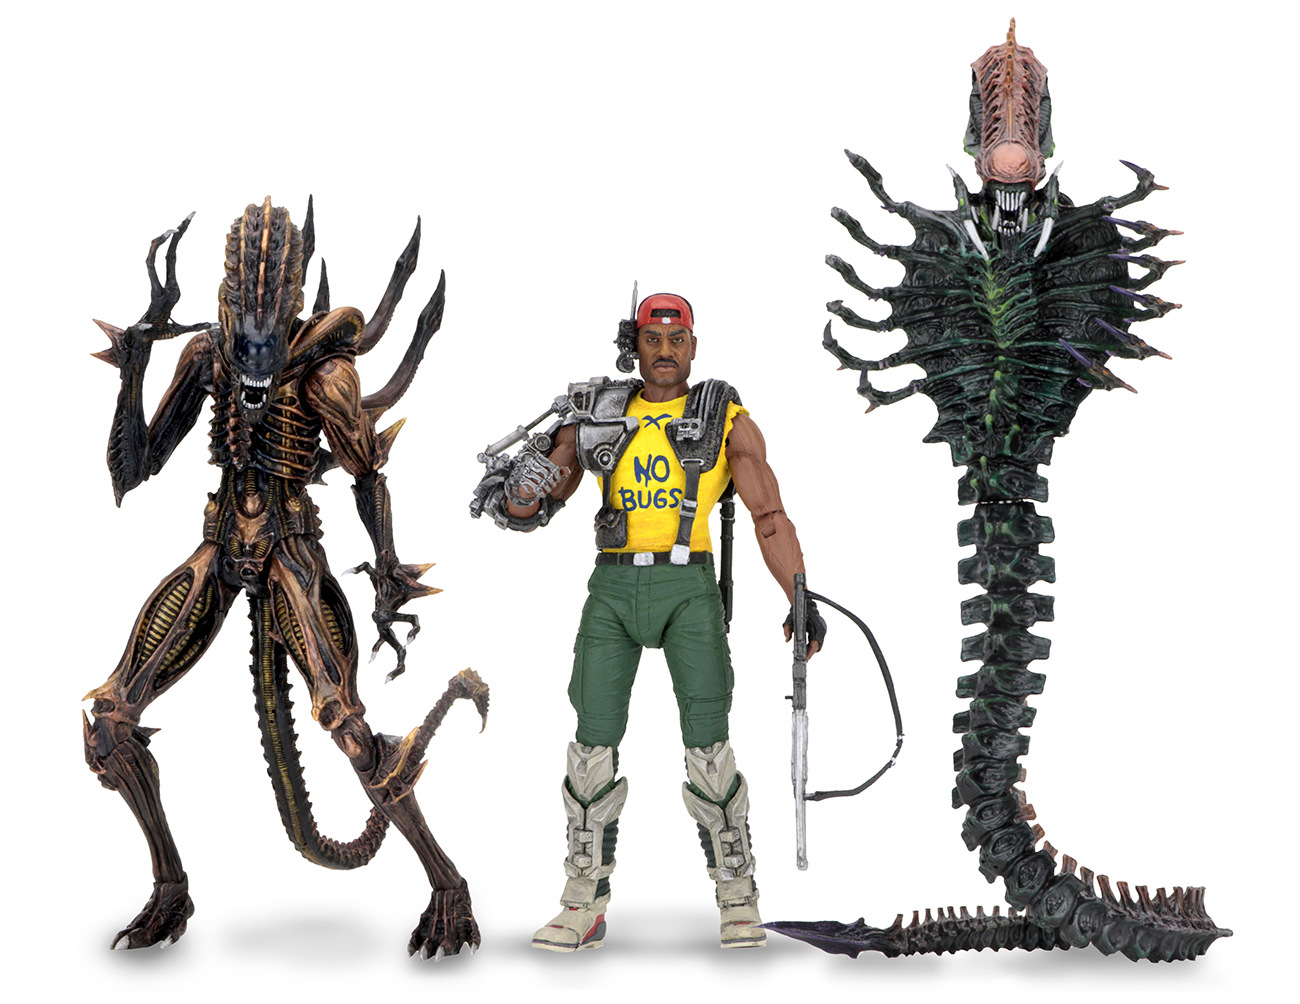 Movie NECA Cool Aliens the 13th Lineup Alien Kenner Snake Alien Scorpion Predator Collectible Models ToysMovie NECA Cool Aliens the 13th Lineup Alien Kenner Snake Alien Scorpion Predator Collectible Models Toys